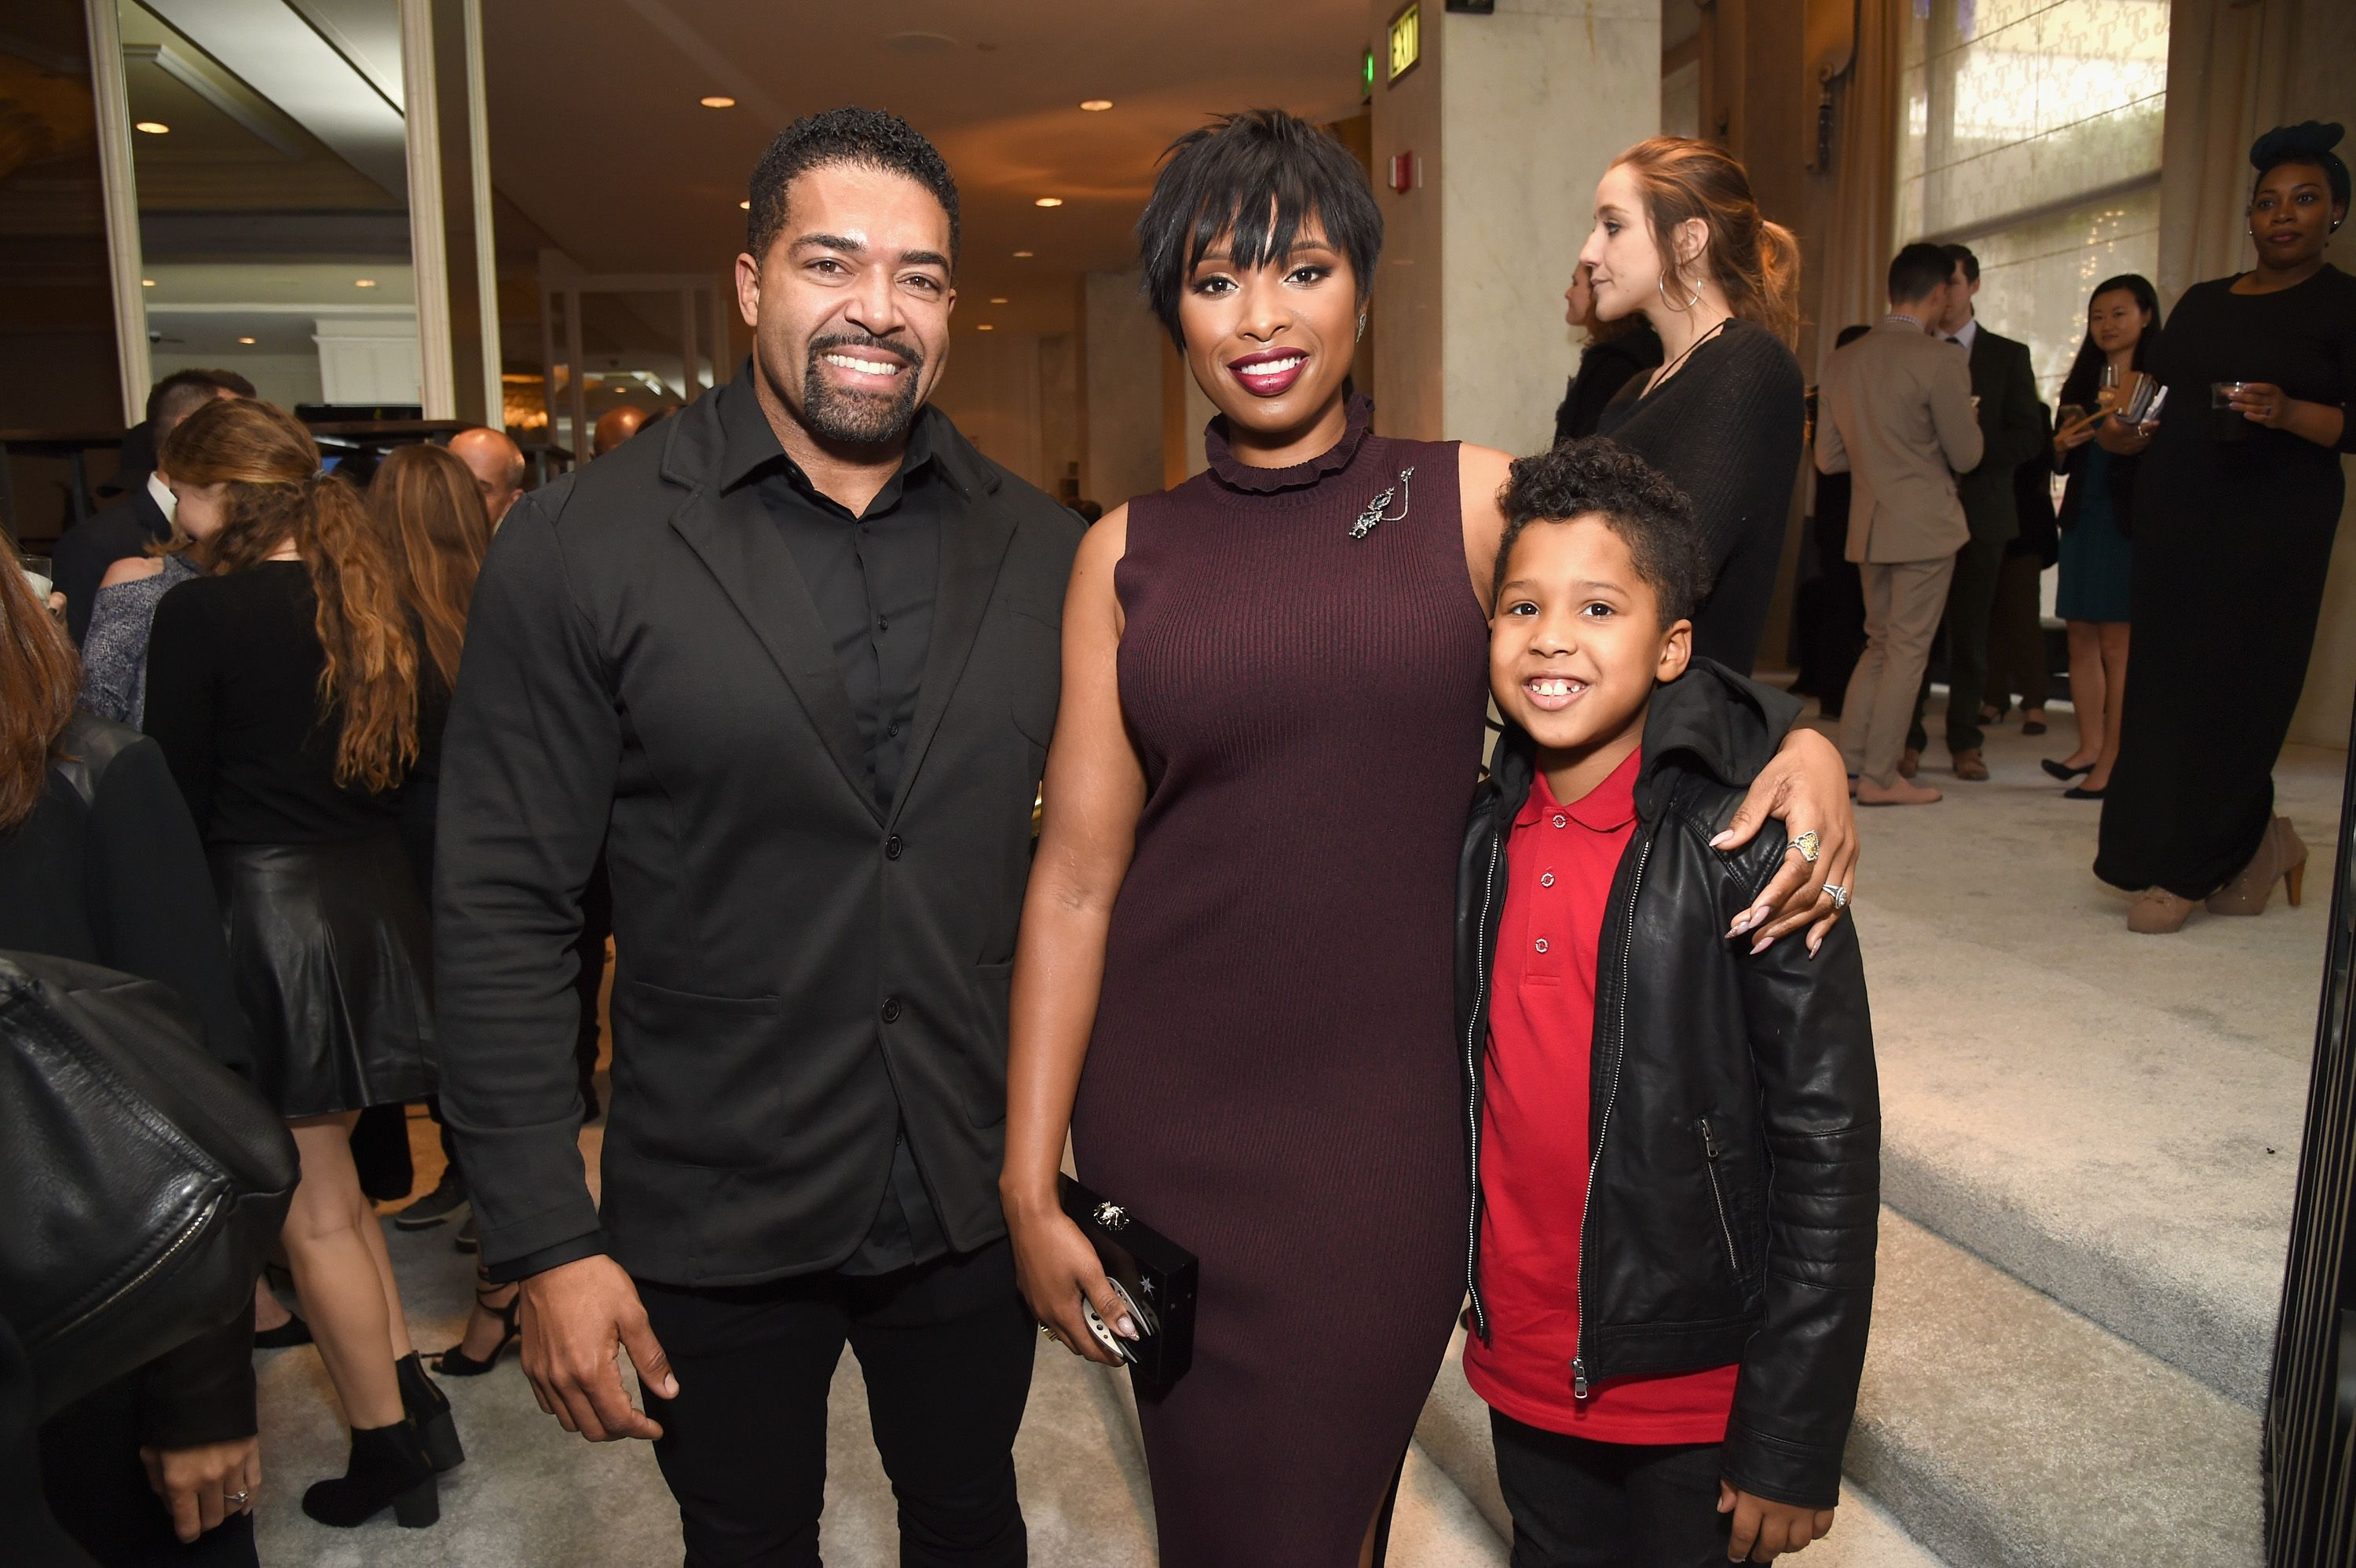 Wrestler David Otunga, honoree Jennifer Hudson, and their son David Otunga Jr. at the 2016 March of Dimes Celebration of Babies at the Beverly Wilshire Four Seasons Hotel on December 9, 2016 | Source: Getty Images